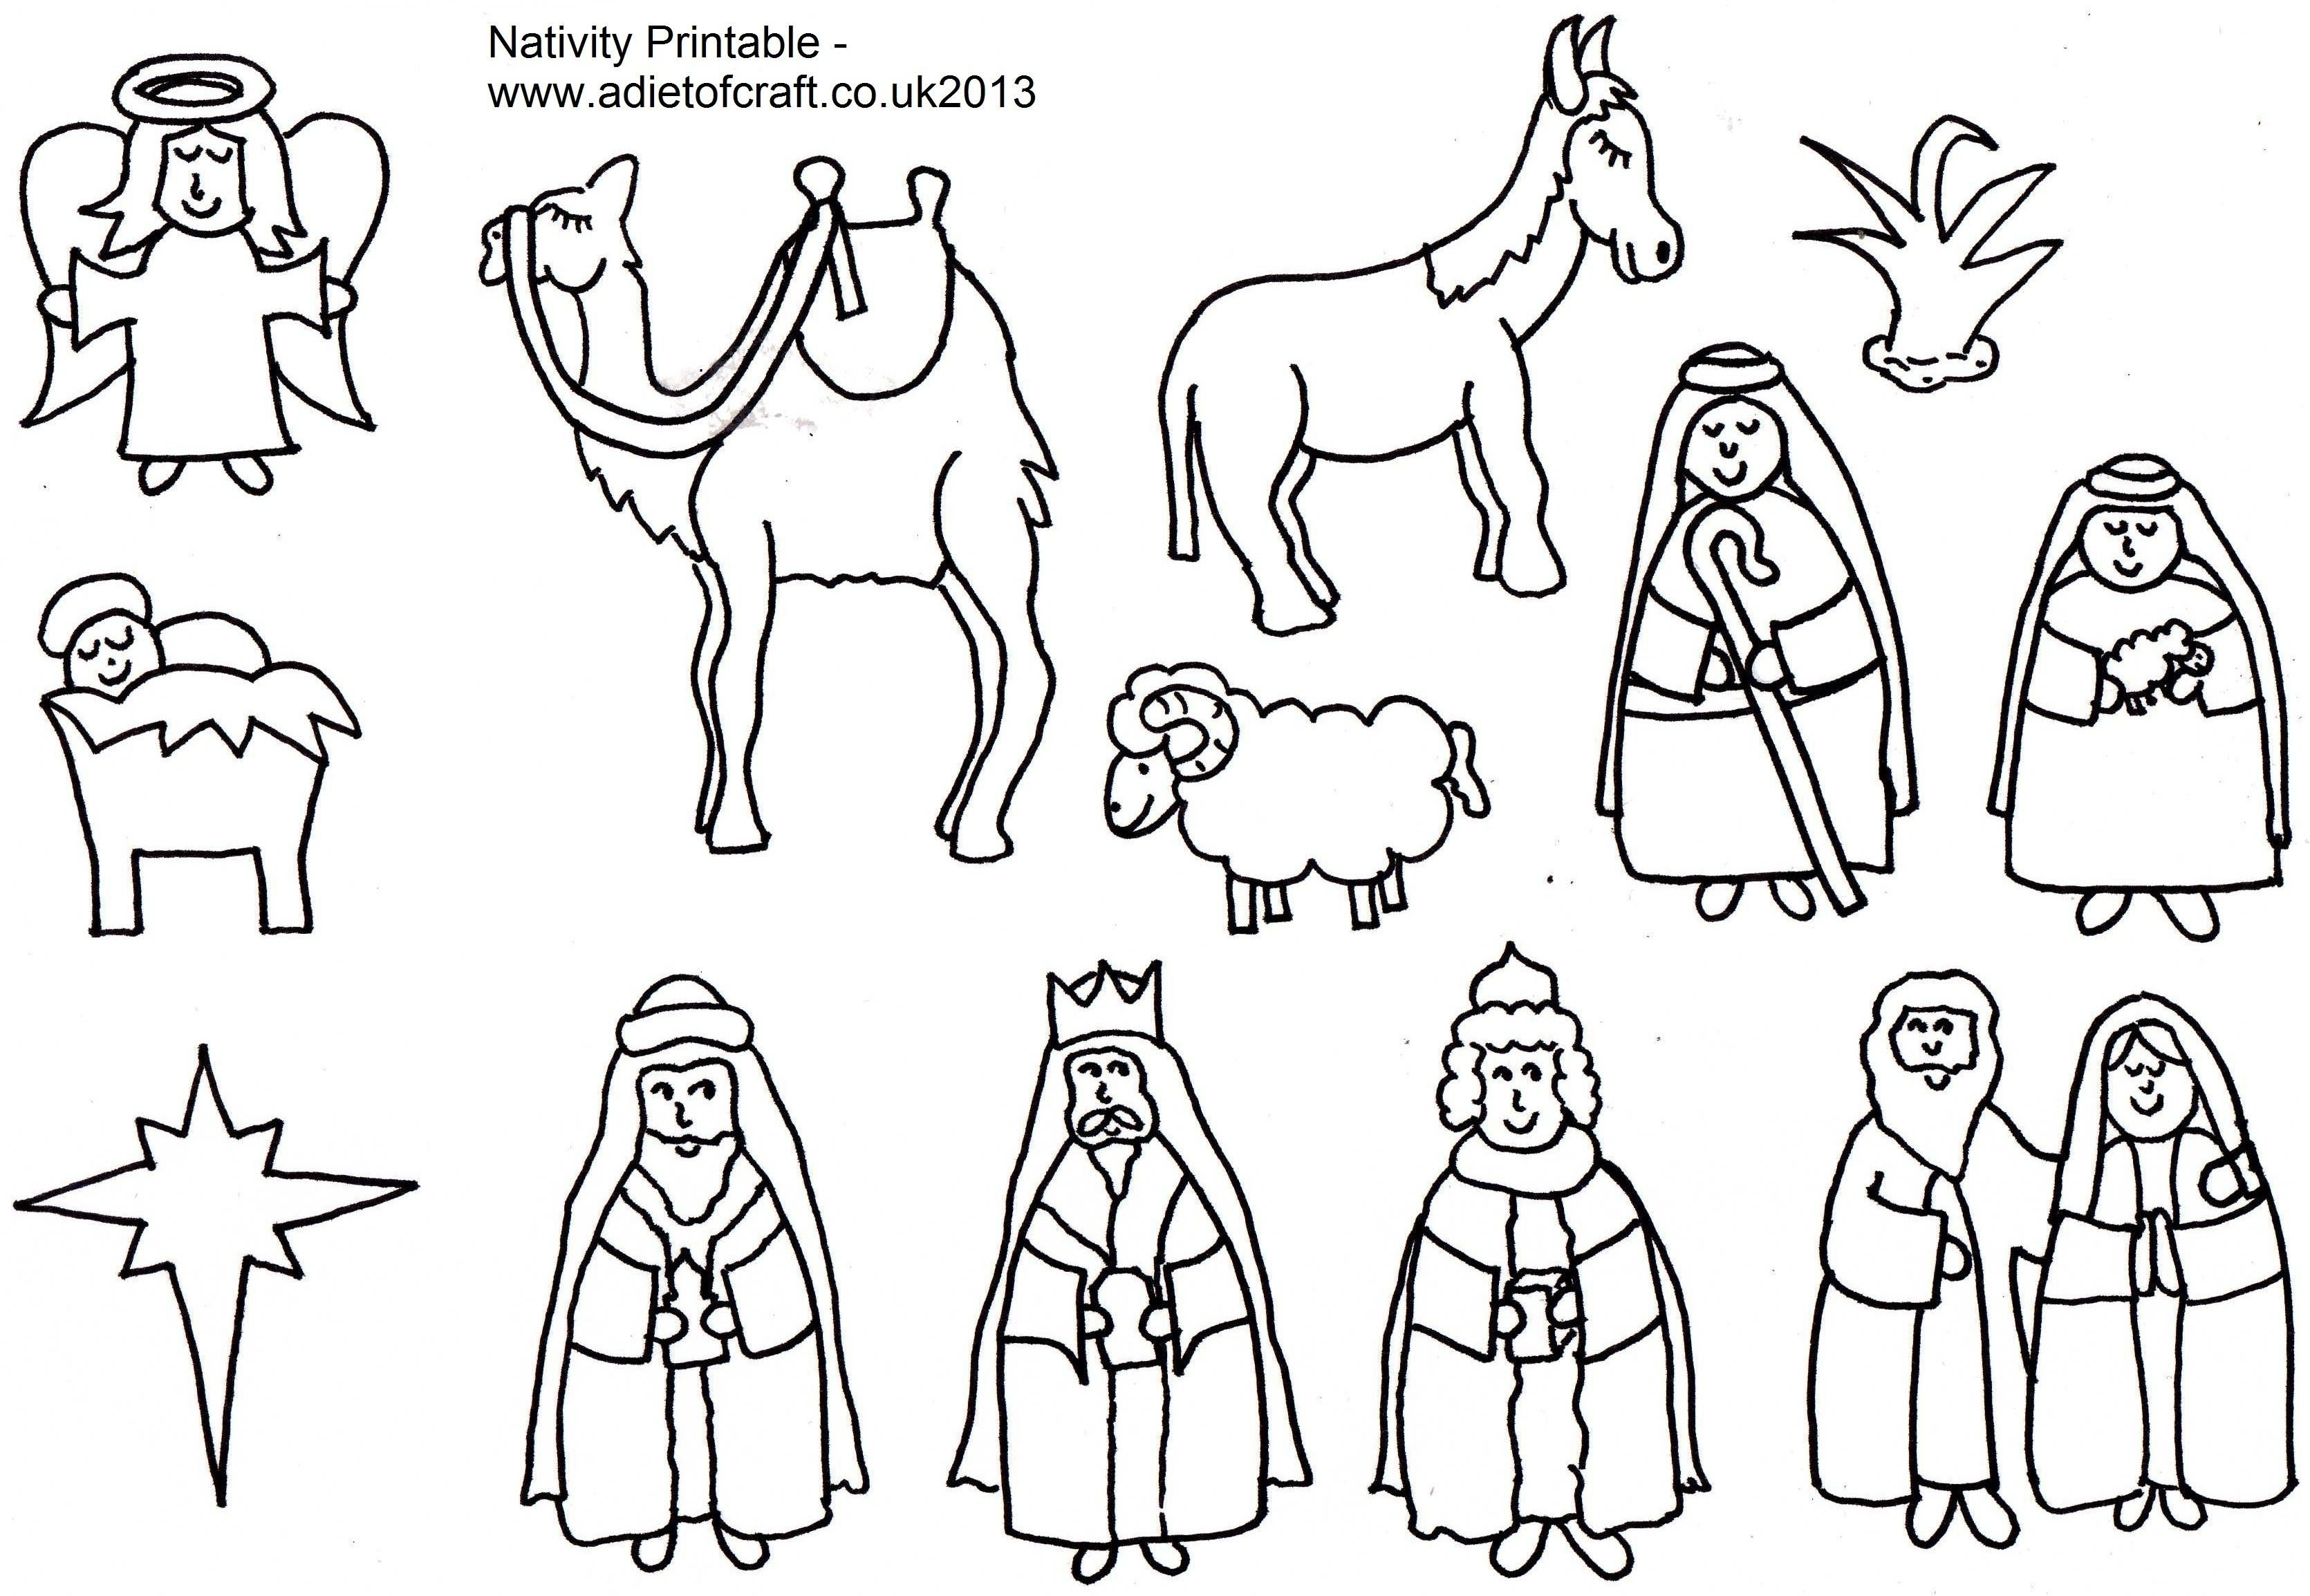 Printable Coloring Pages Of Nativity Scenes For Kids ...